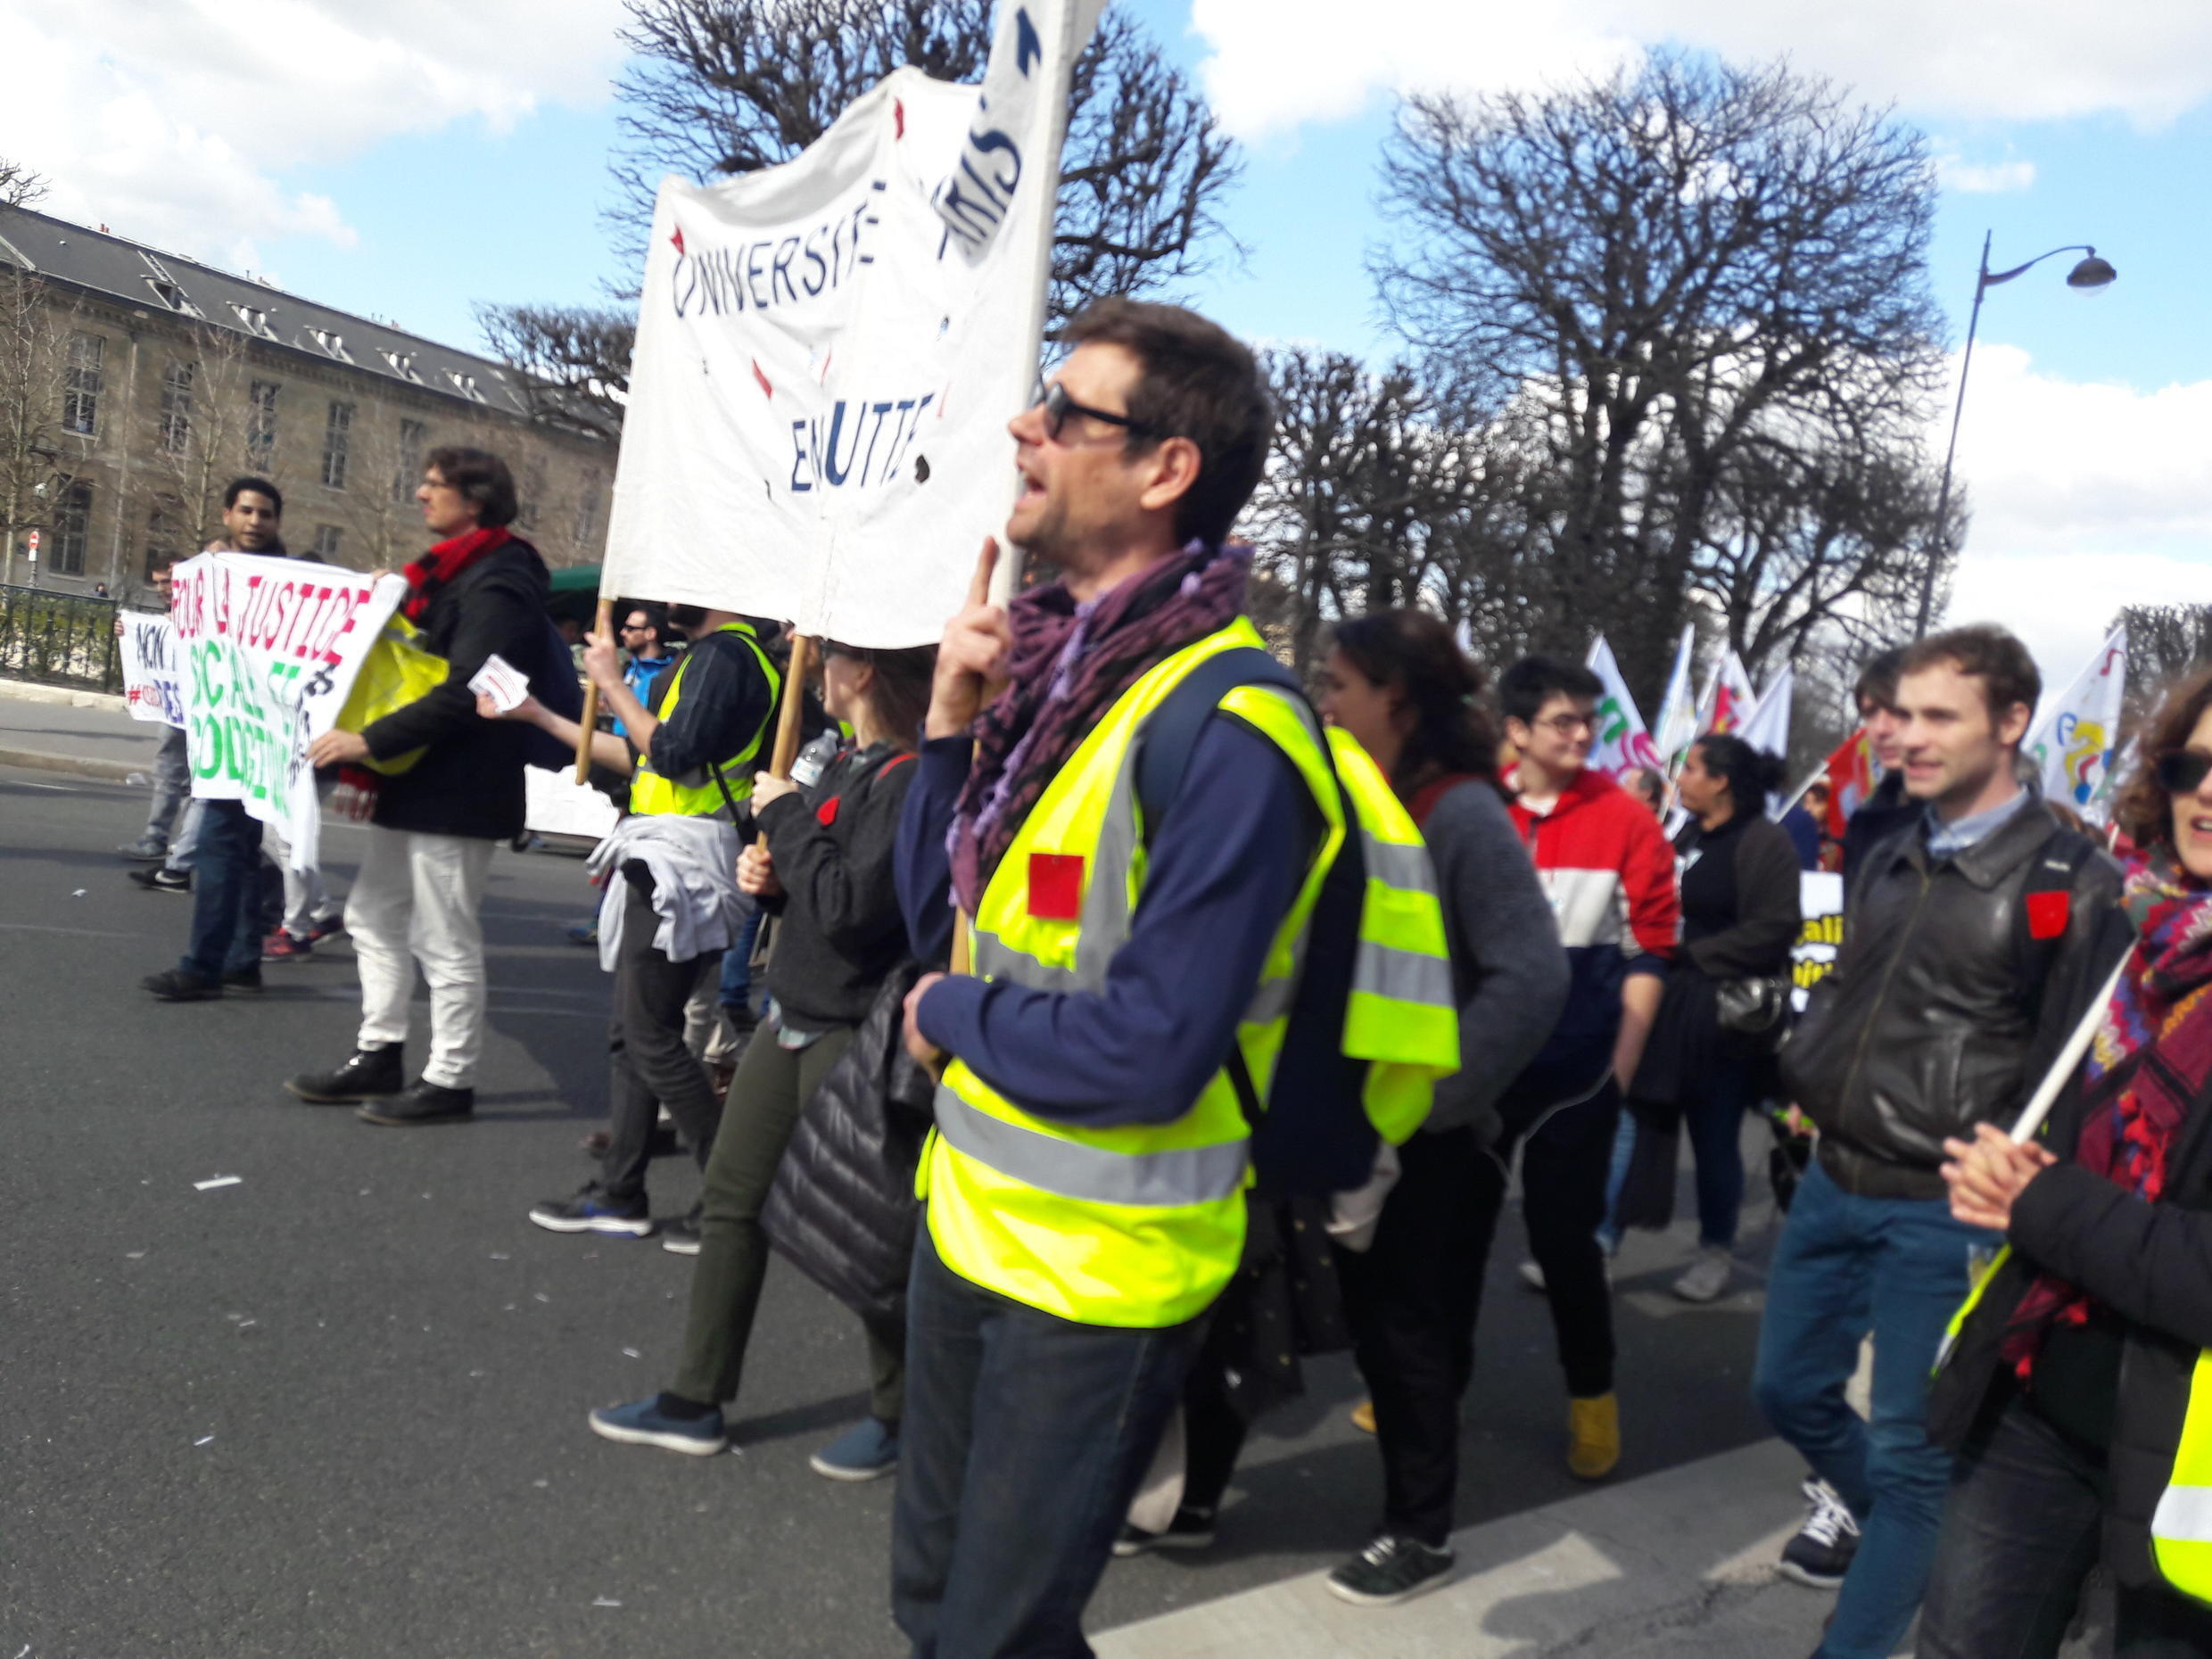 Demonstrators wearing yellow vests joined a trade union march in Paris on Tuesday, 19 March 2019.